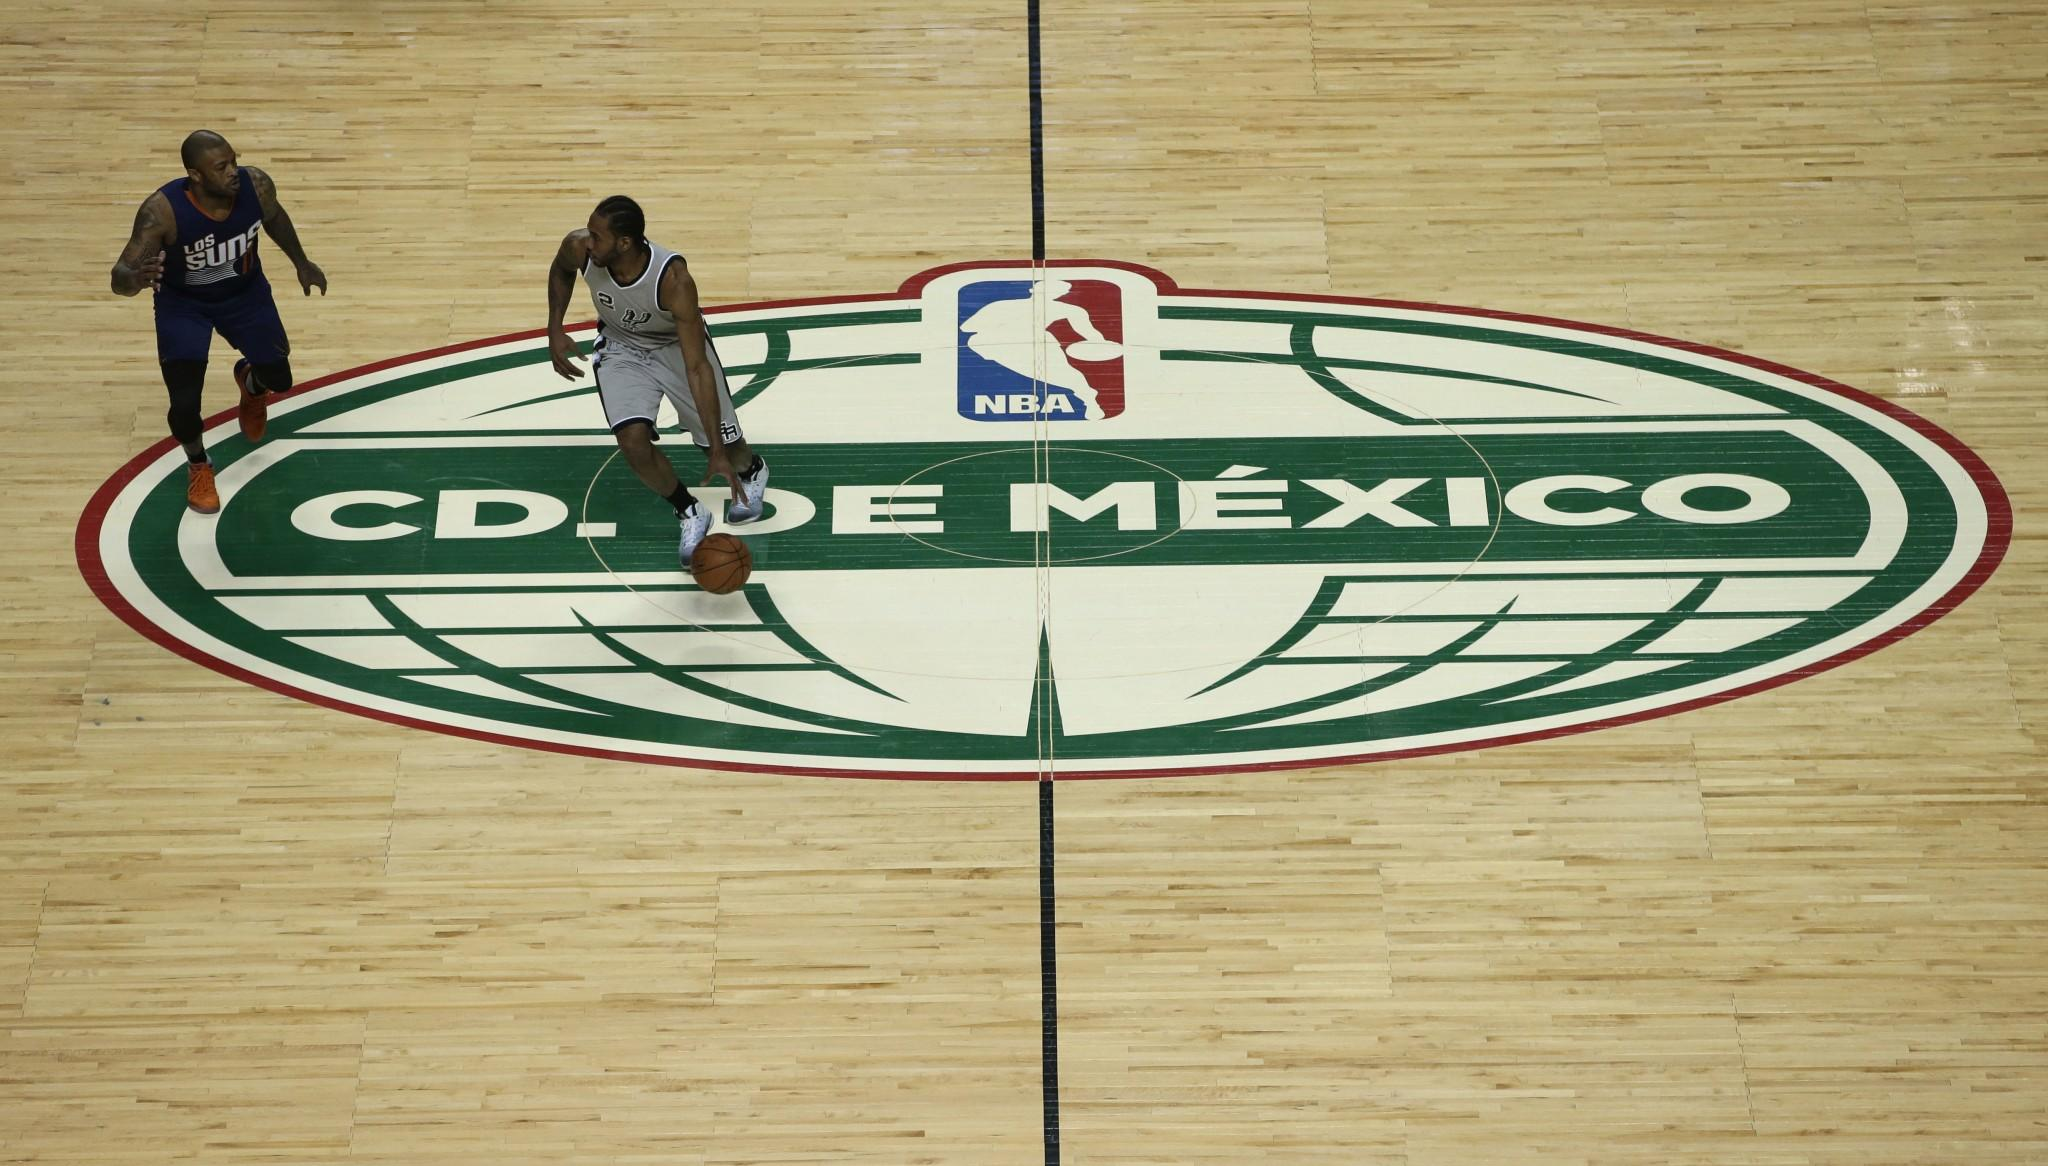 The NBA may look to hold 'some sort of midseason tournament' in Mexico